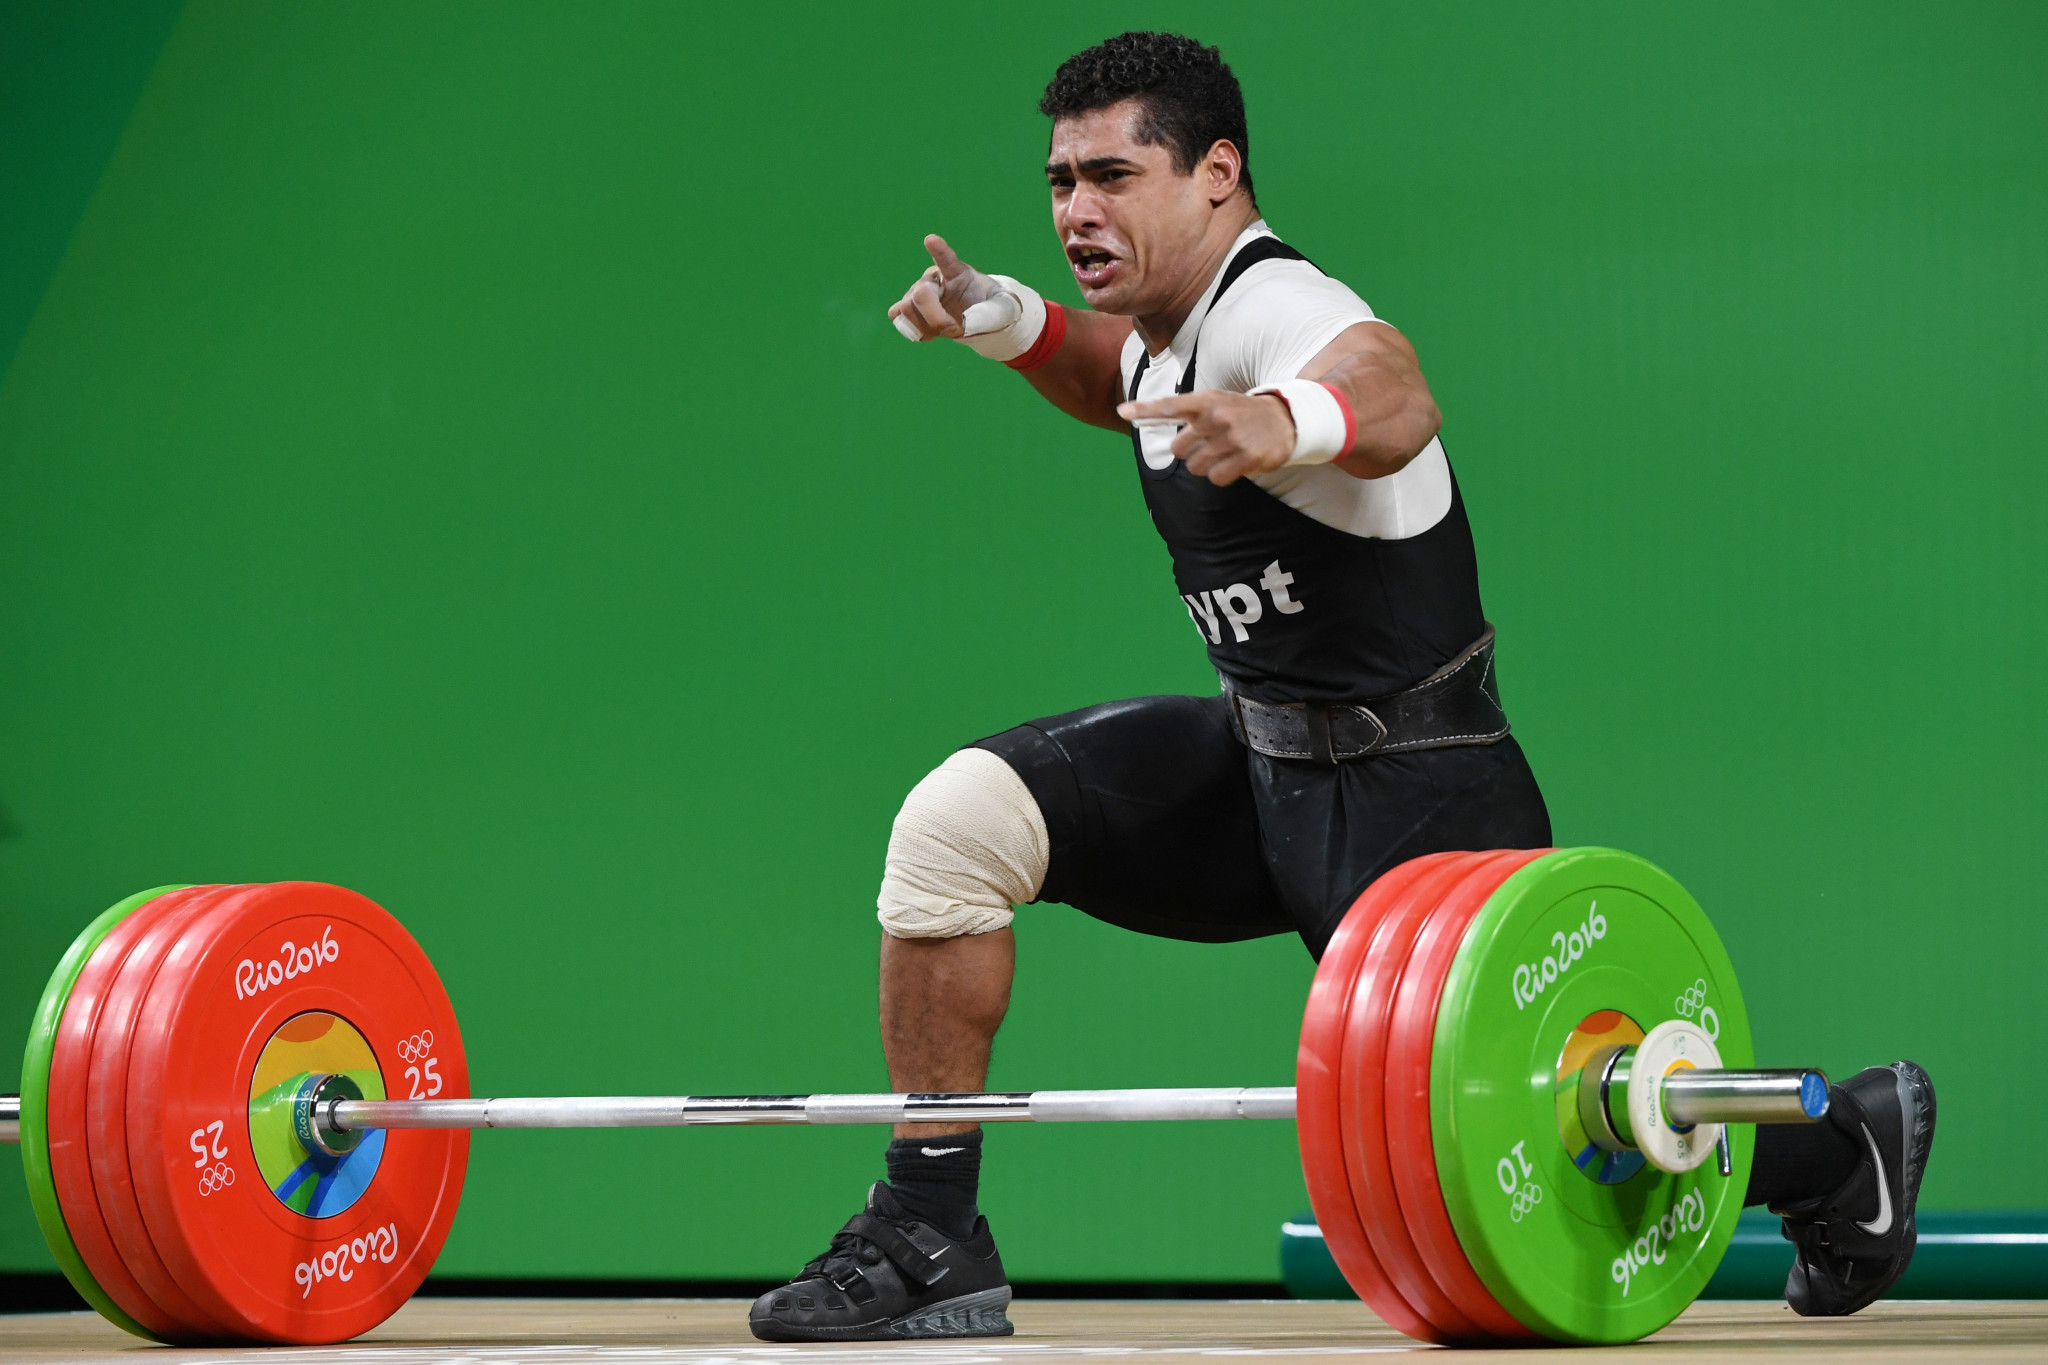 Mohamed Ehab, the men's 77kg bronze medallist at the Rio 2016 Olympic Games, is among the athletes affected by the suspension of the Egyptian Weightlifting Federation ©Getty Images